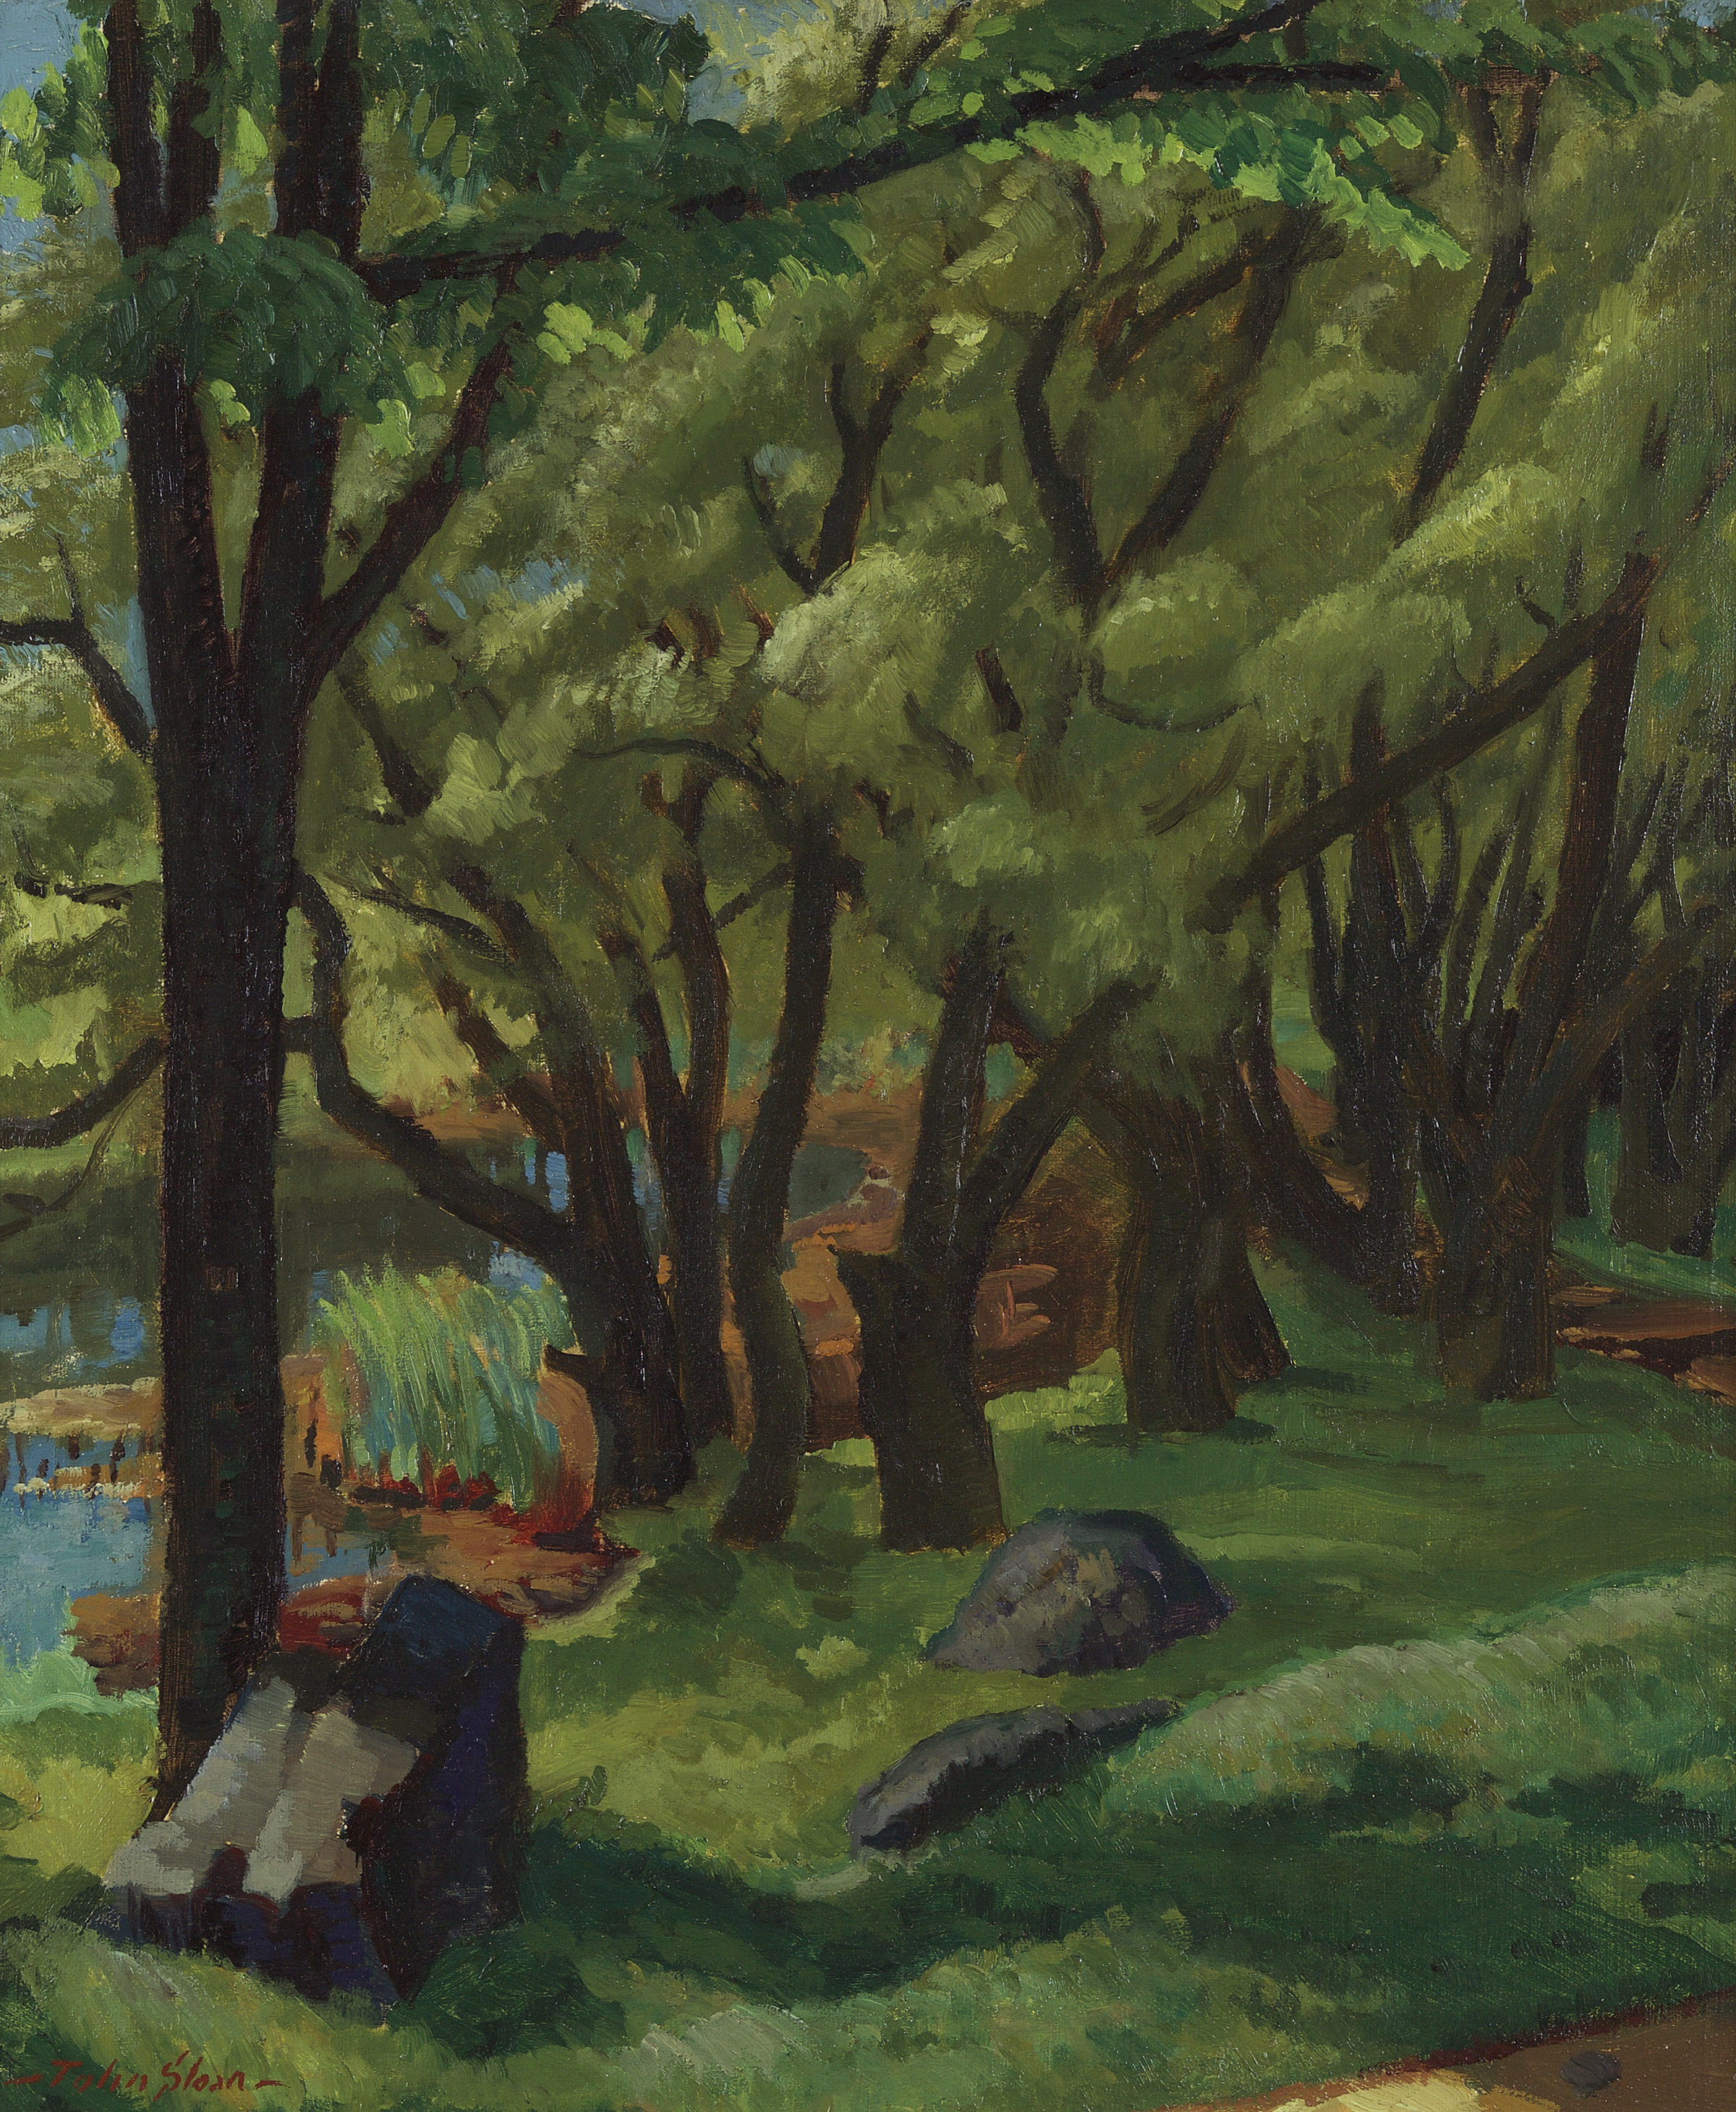 Painting of green field with tall willow trees, water on left